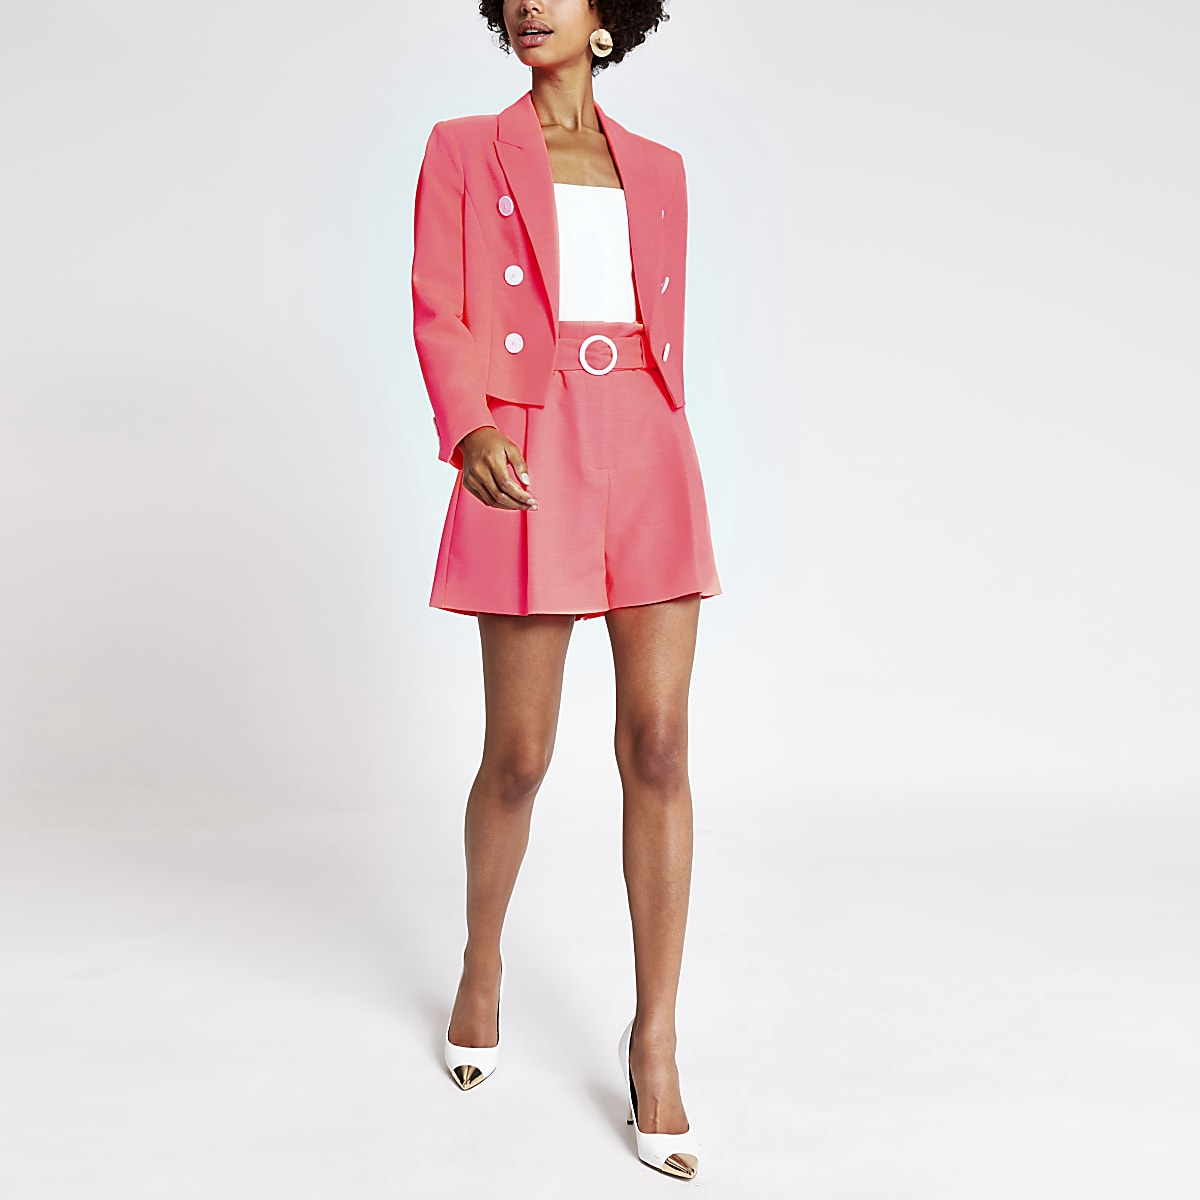 Cropped blazer in neonroze